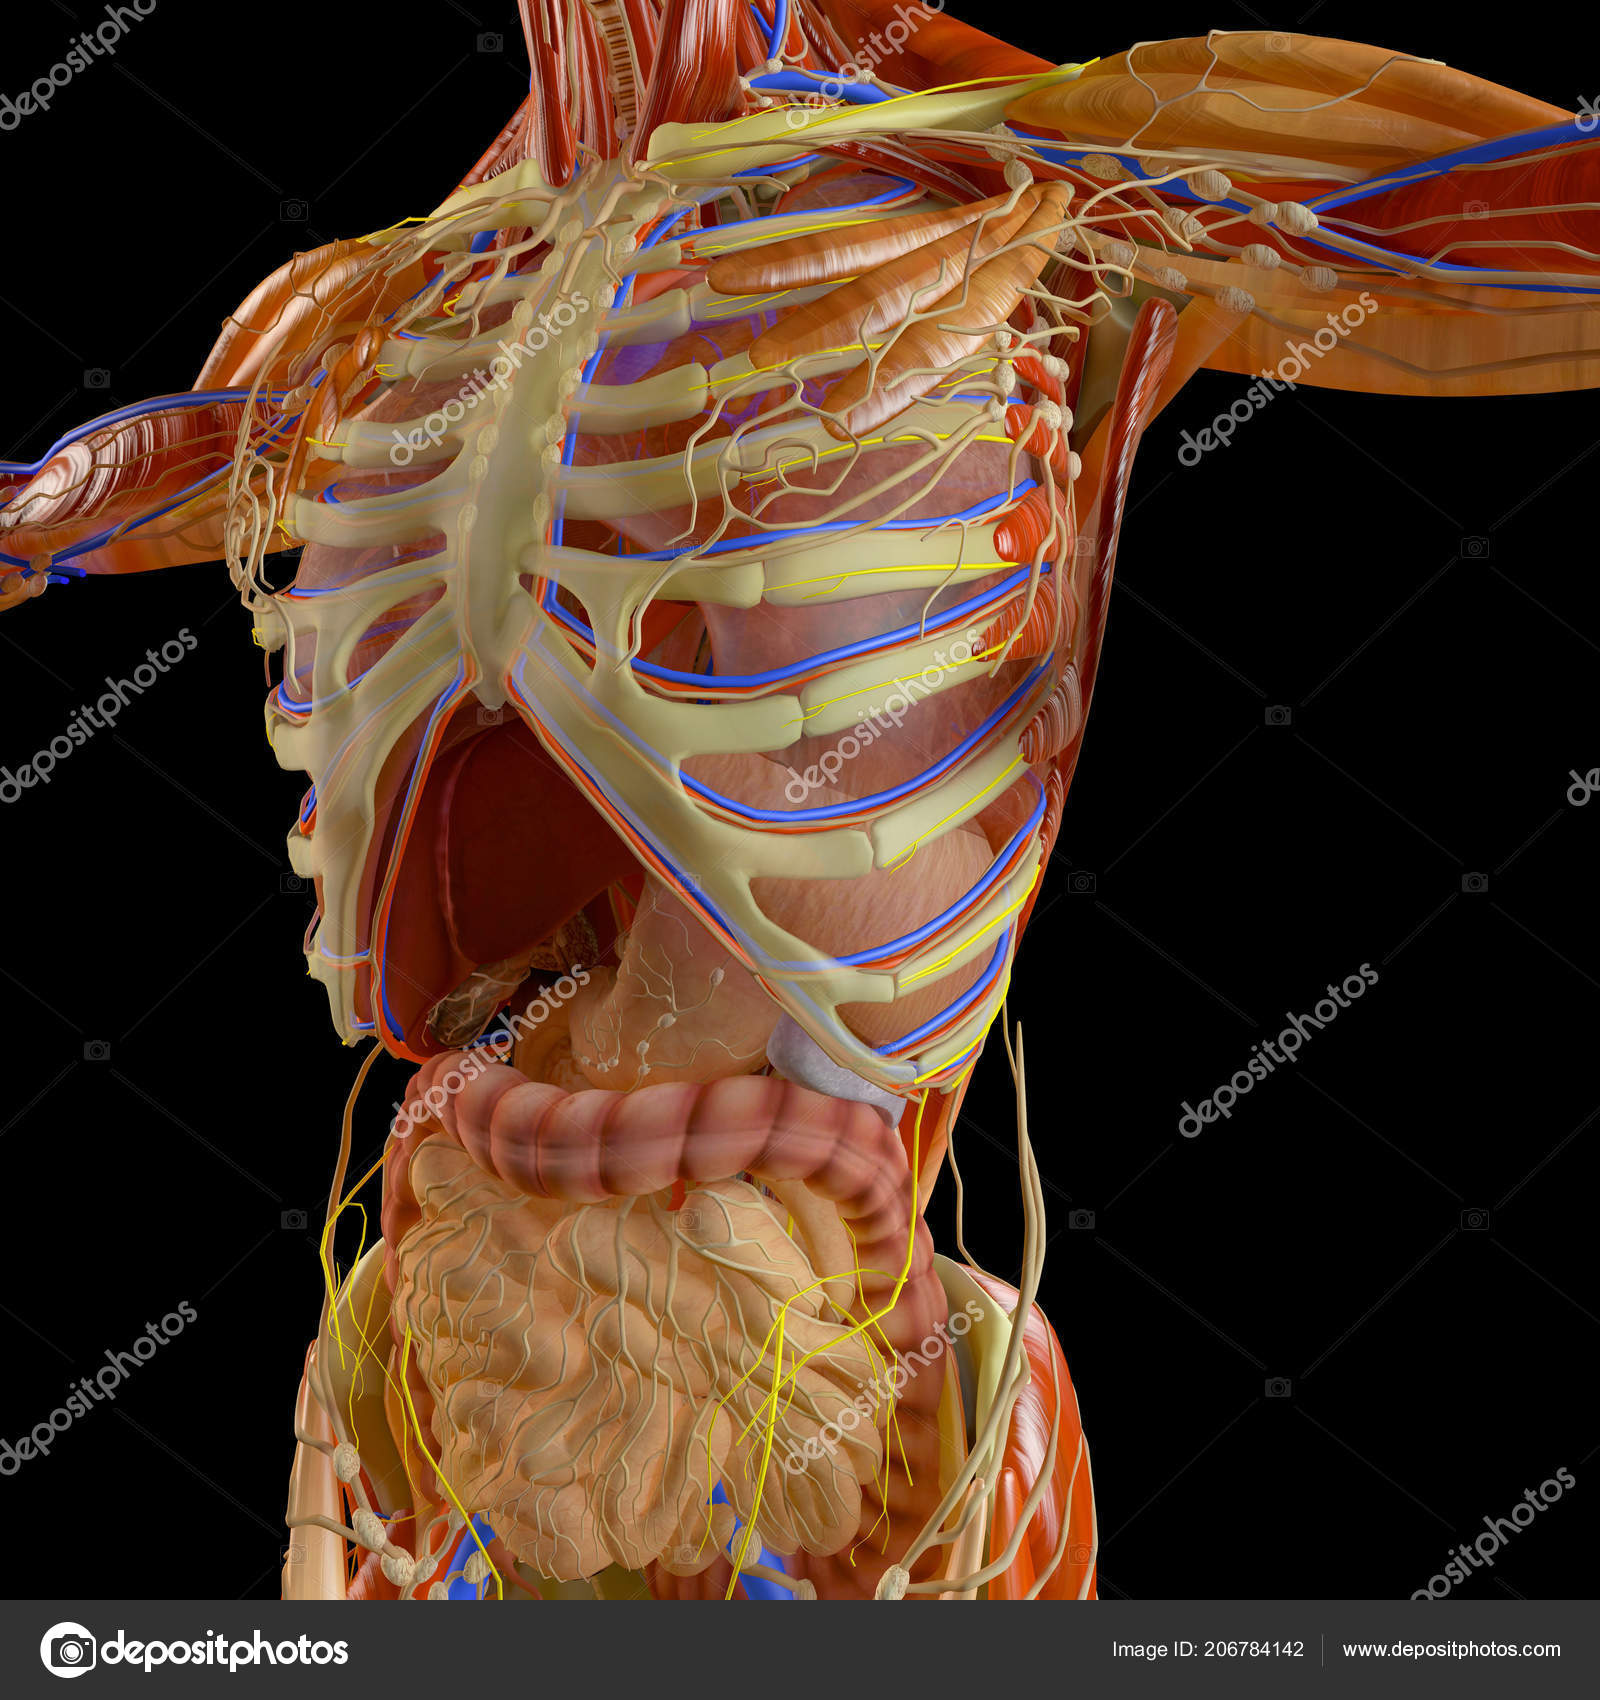 hight resolution of human body man digestive system anatomy intestine enlargement abdominal sector stock photo